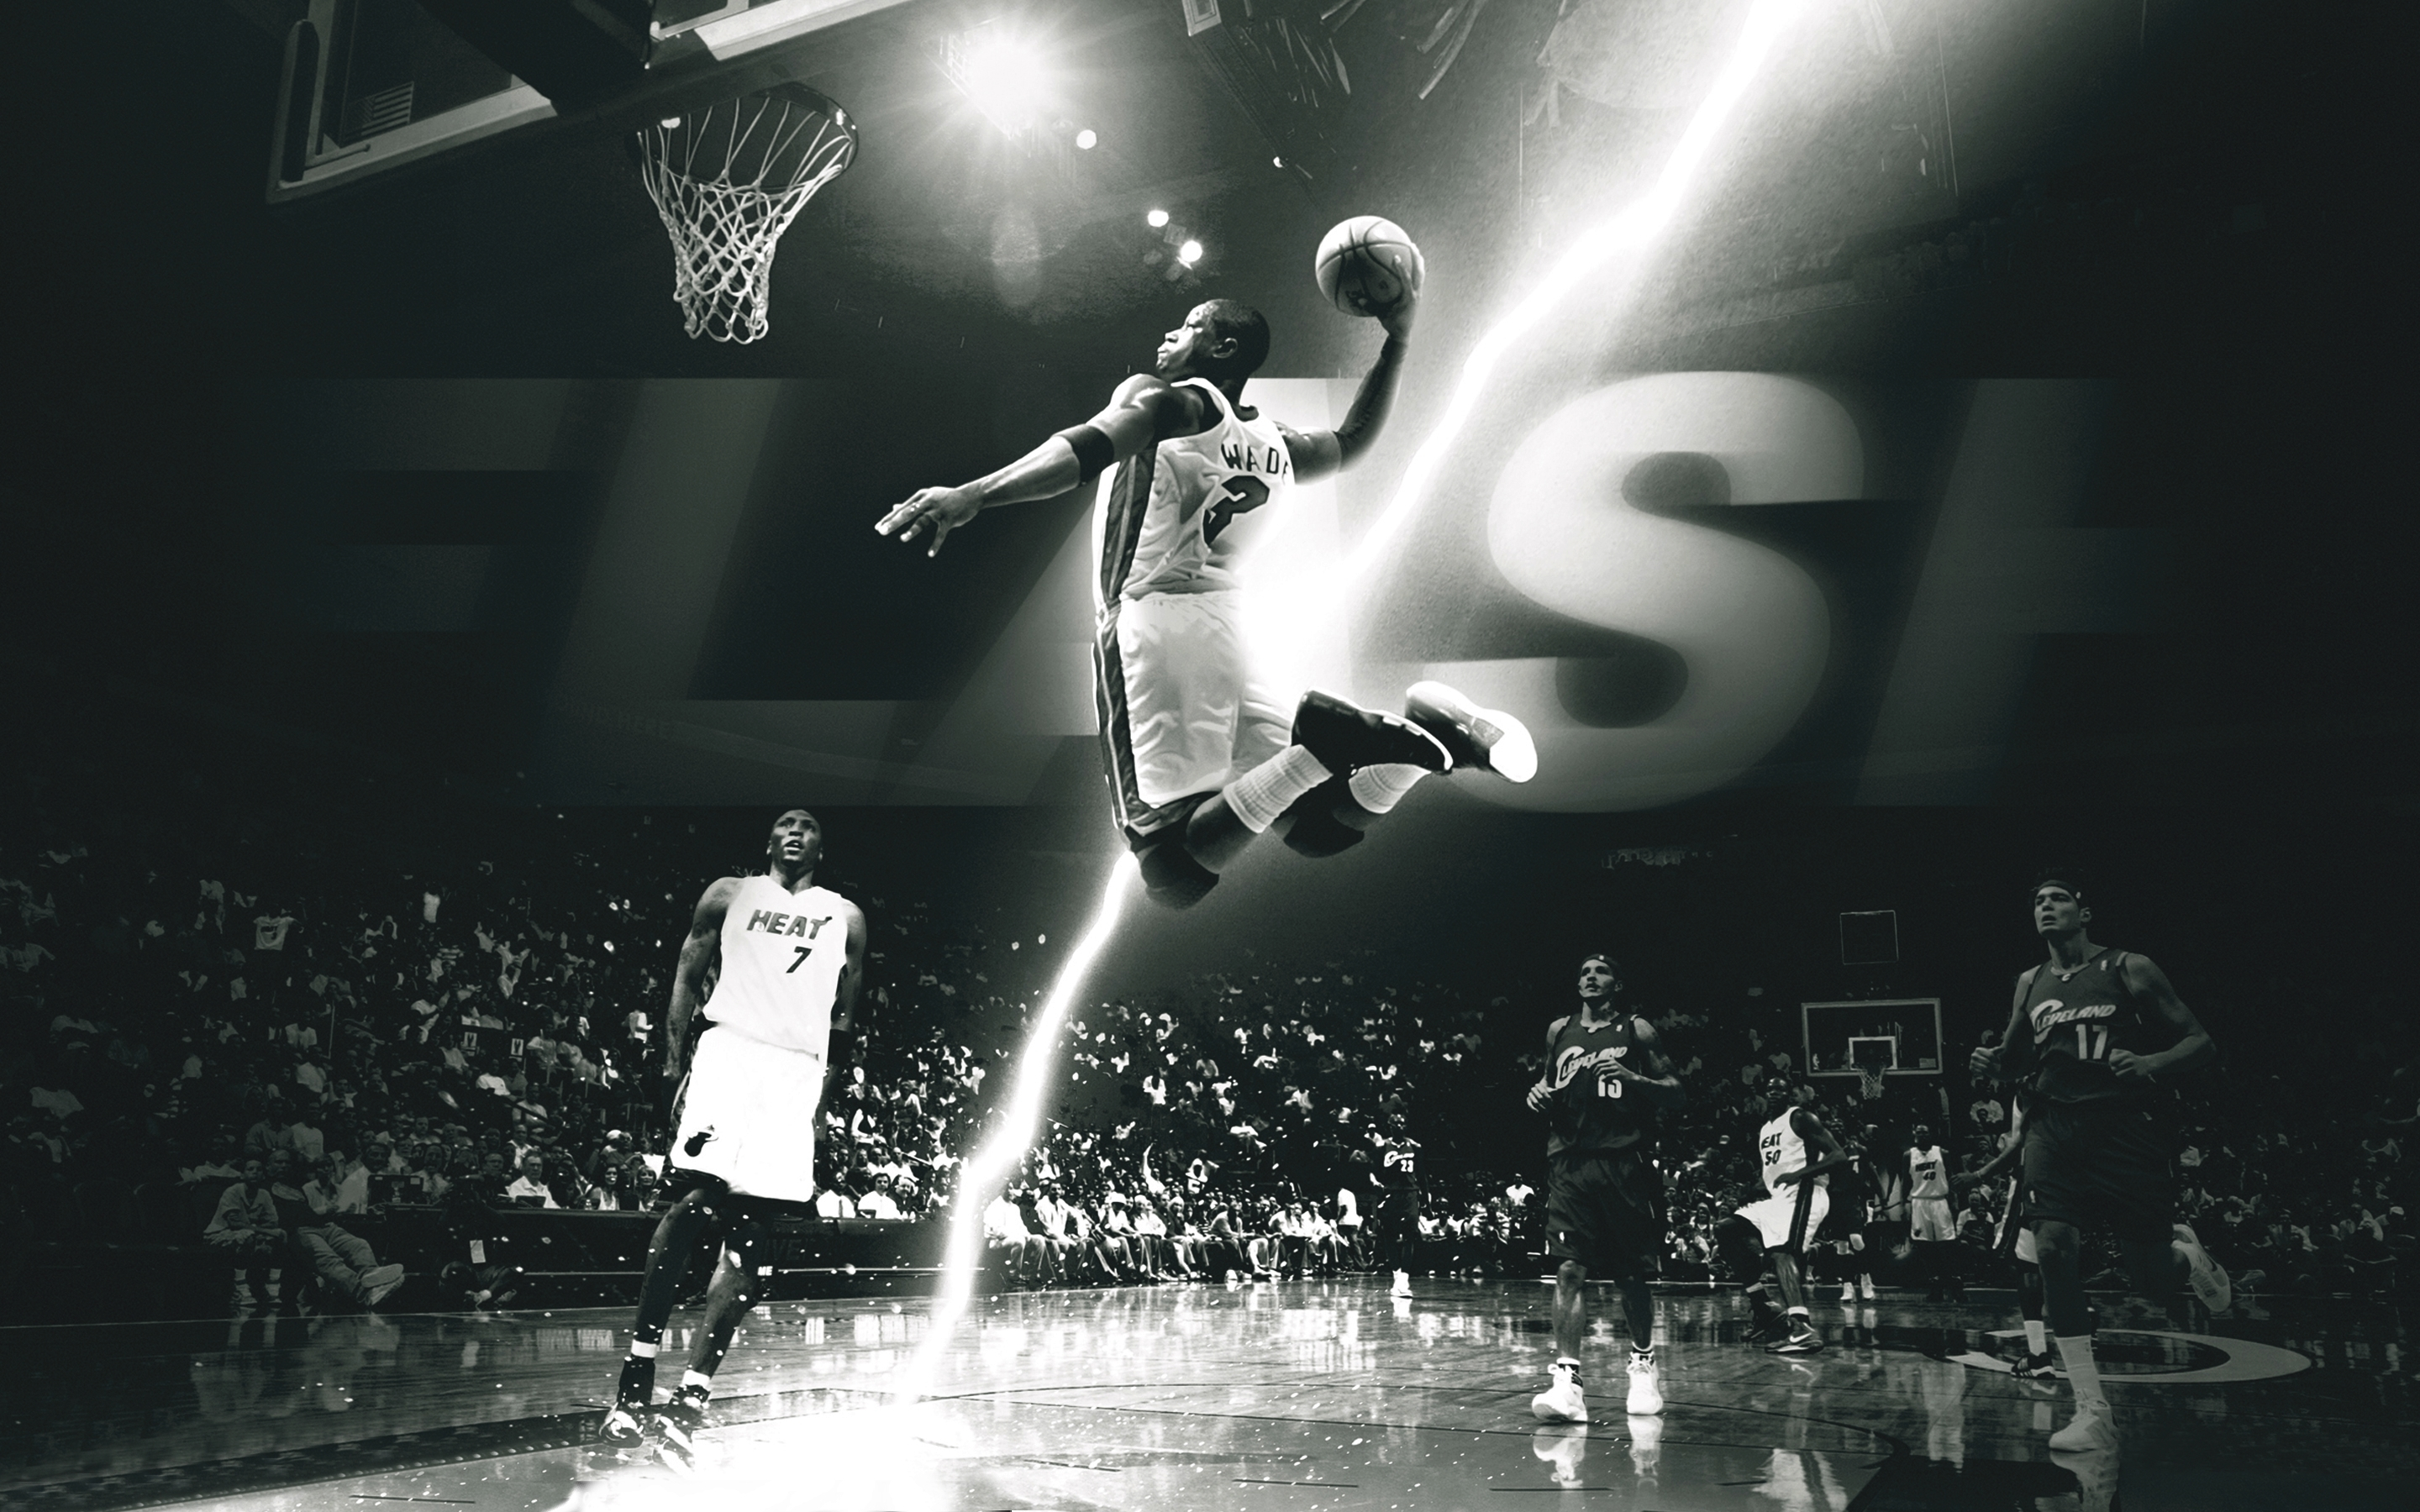 Dwyane wade basketball lightning team jumping photo hd wallpaper 2880x1800